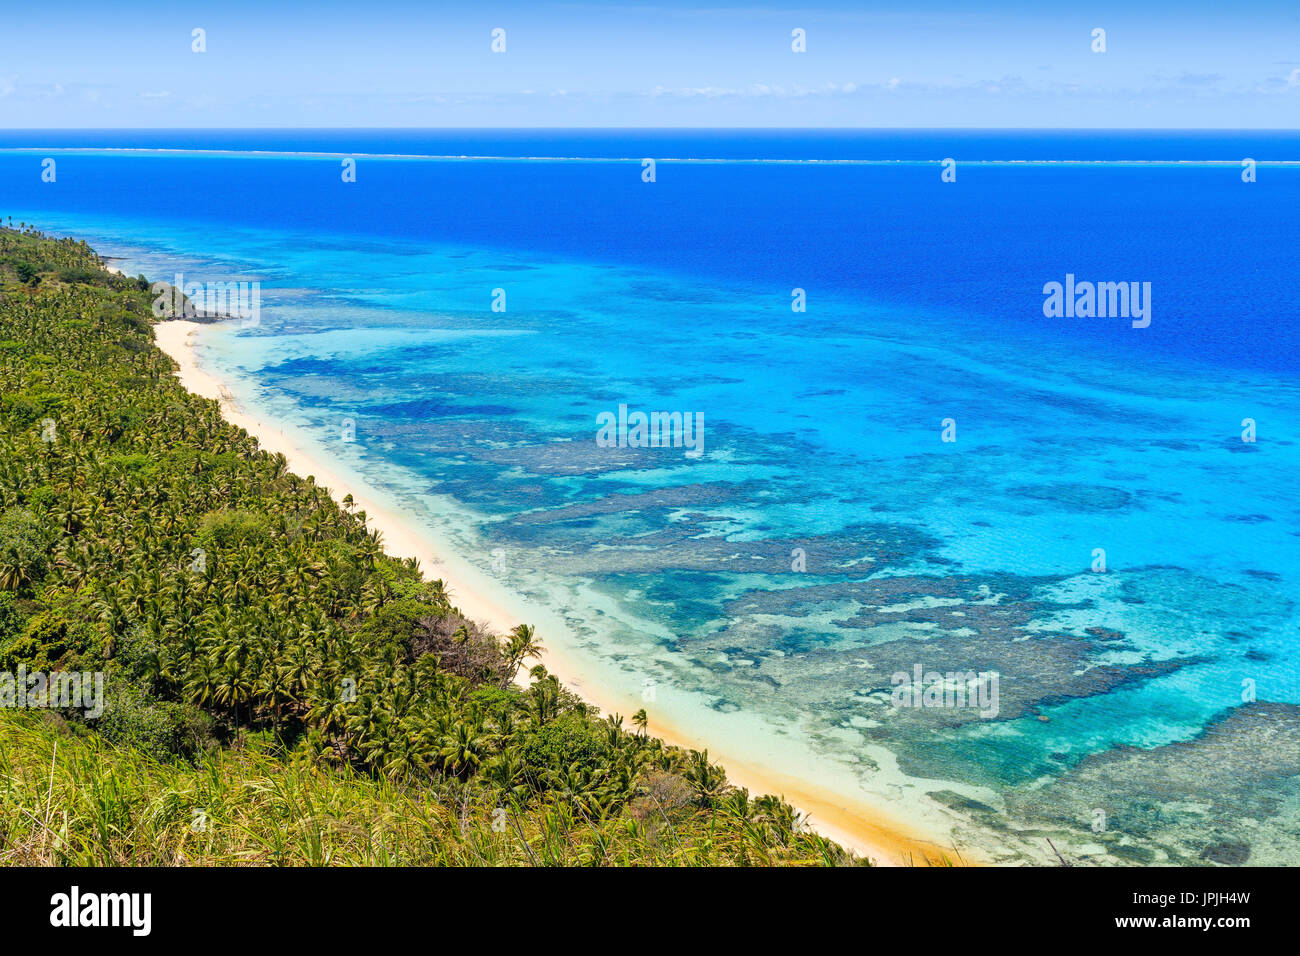 Dravuni Island, Fiji. Panoramic view of the island and beach in the South Pacific ocean. - Stock Image